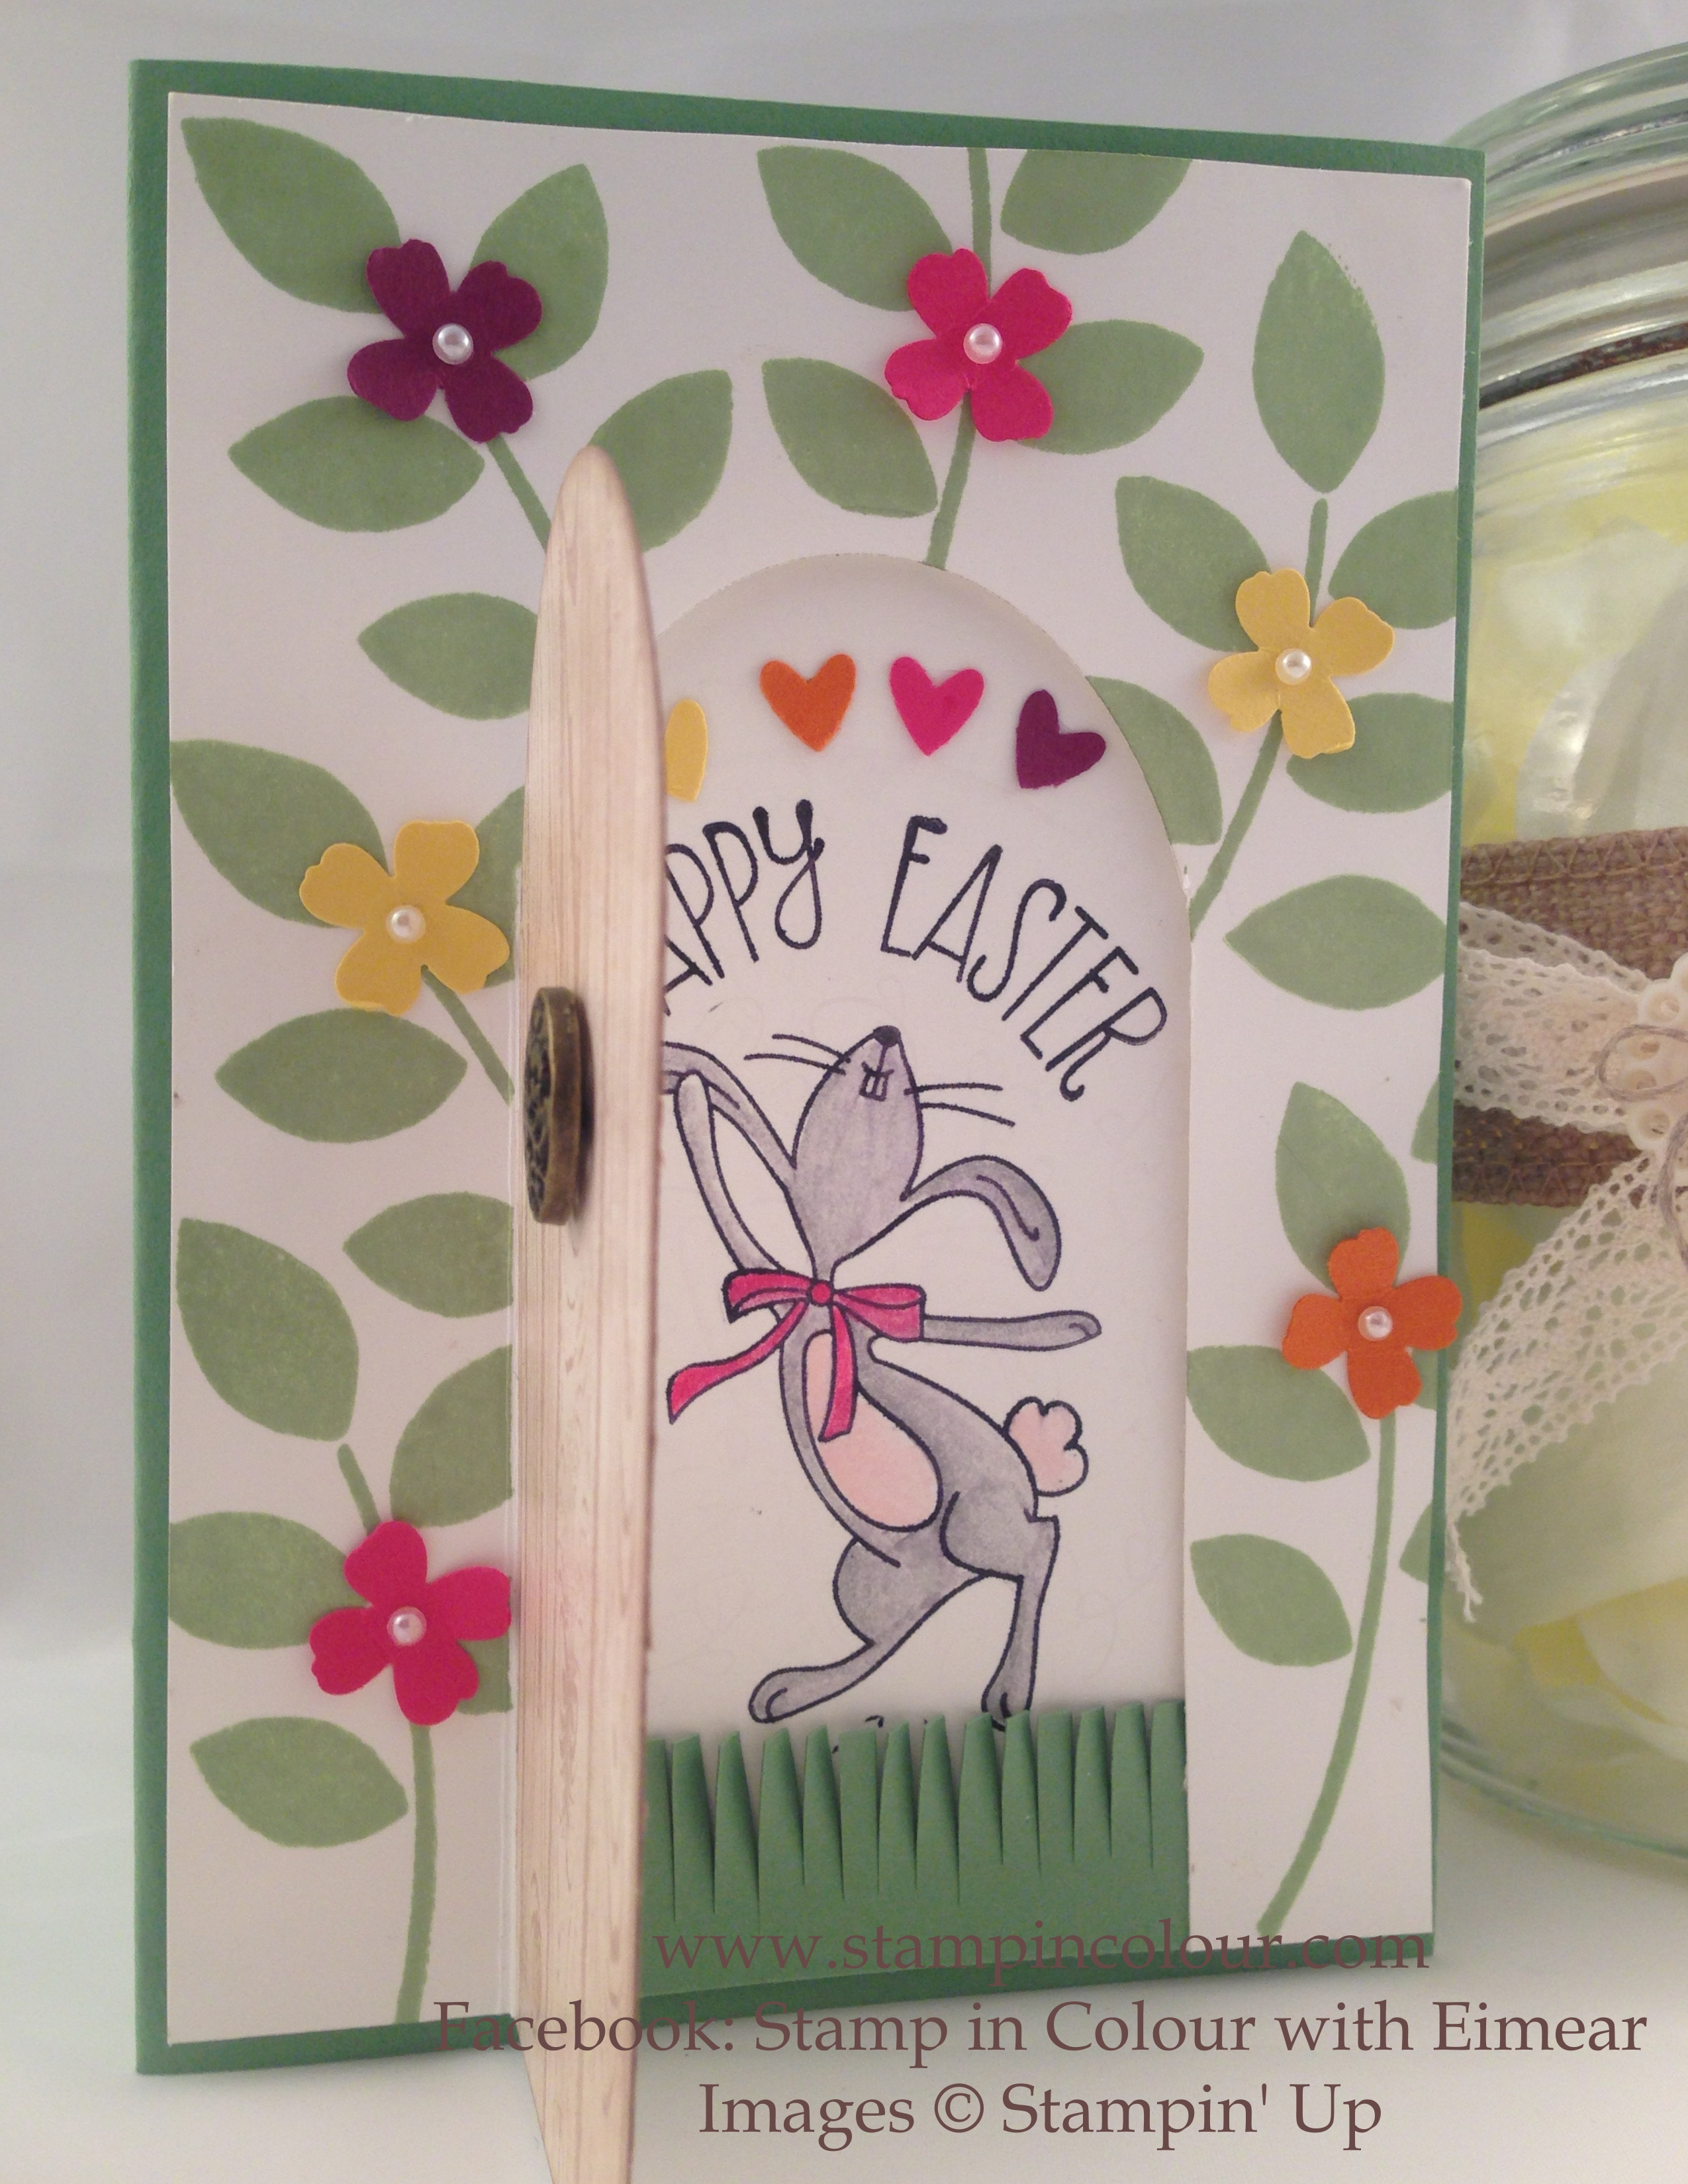 stampin' creative march blog hop with easter cards